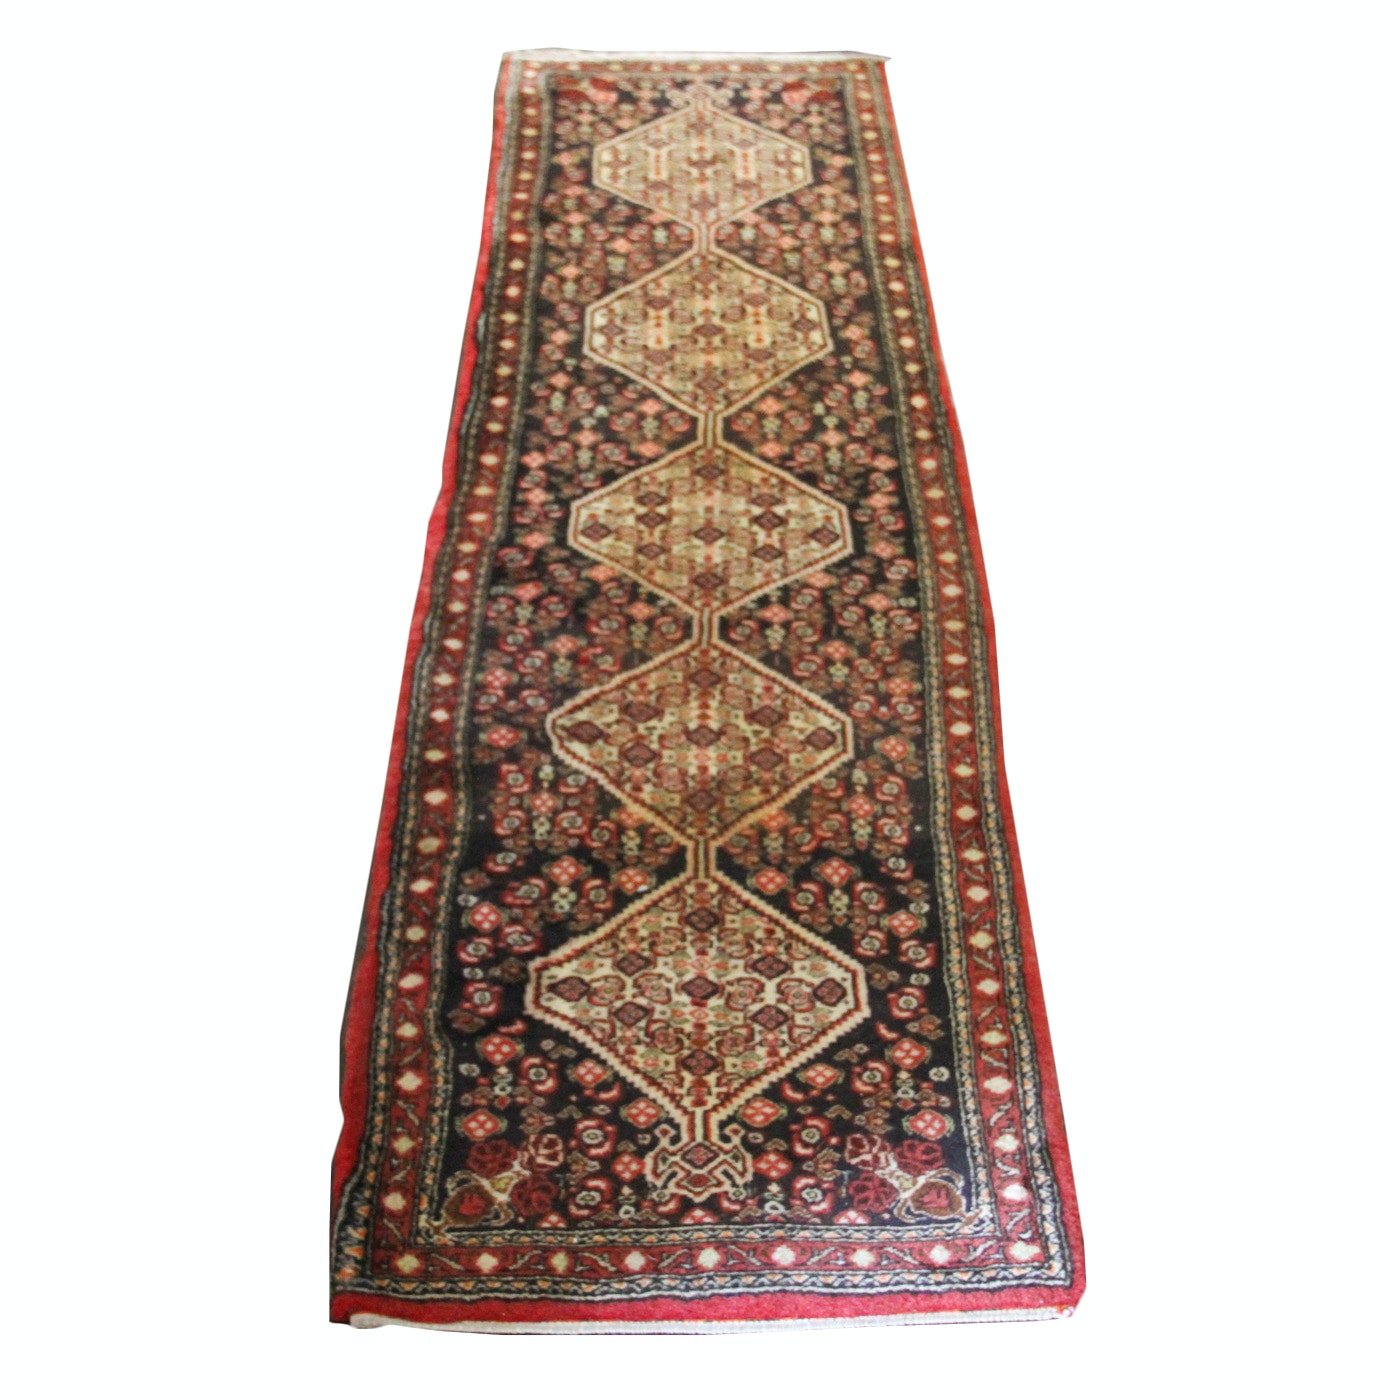 Vintage Persian Hand-Knotted Carpet Runner